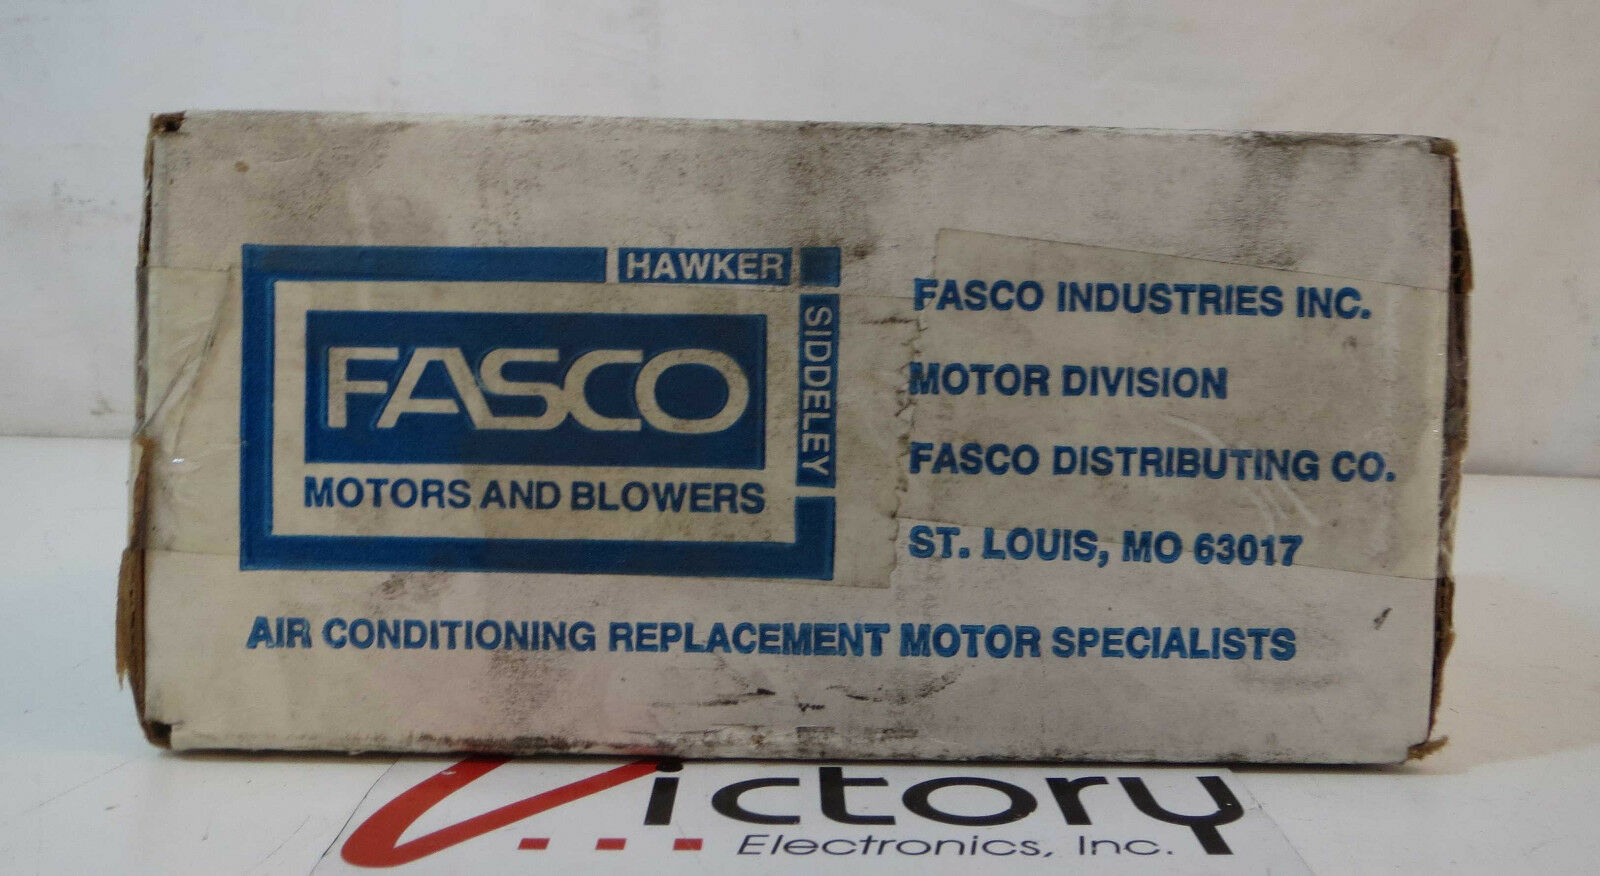 NEW FASCO SHADED Pole Electric Motor, Model: D476, 1/35 HP, .75 Amps ...